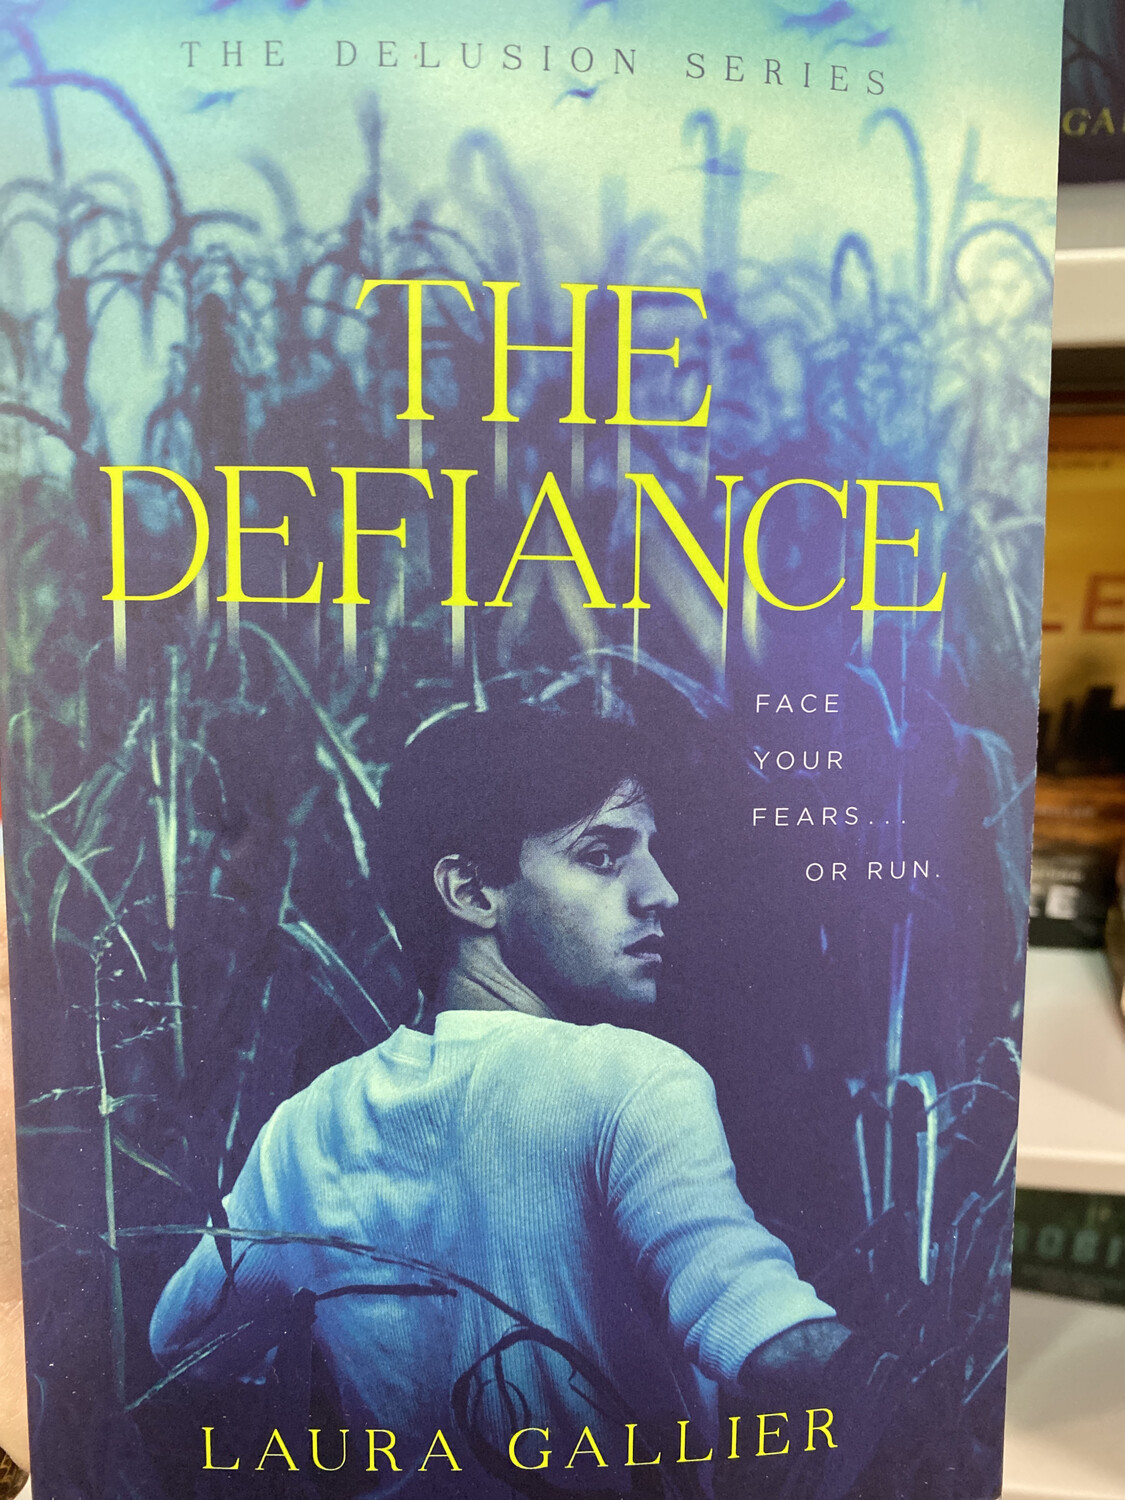 GALLIER, The Defiance, The Delusion Series